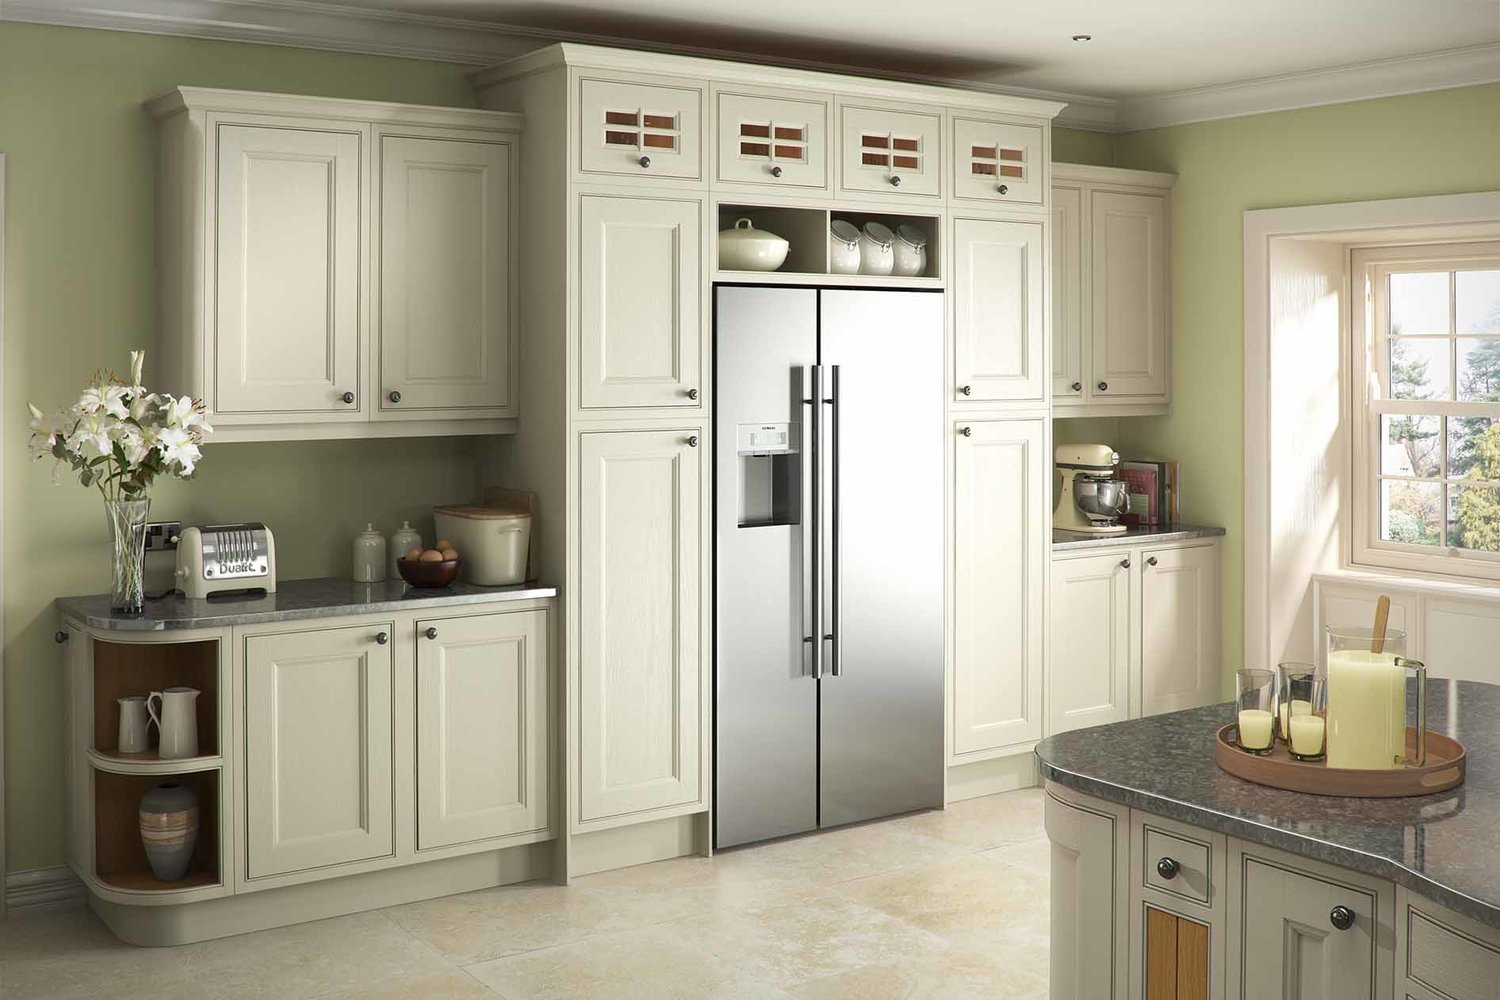 an american style fridge freezer has been cohesively integrated into this traditionally designed kitchen.